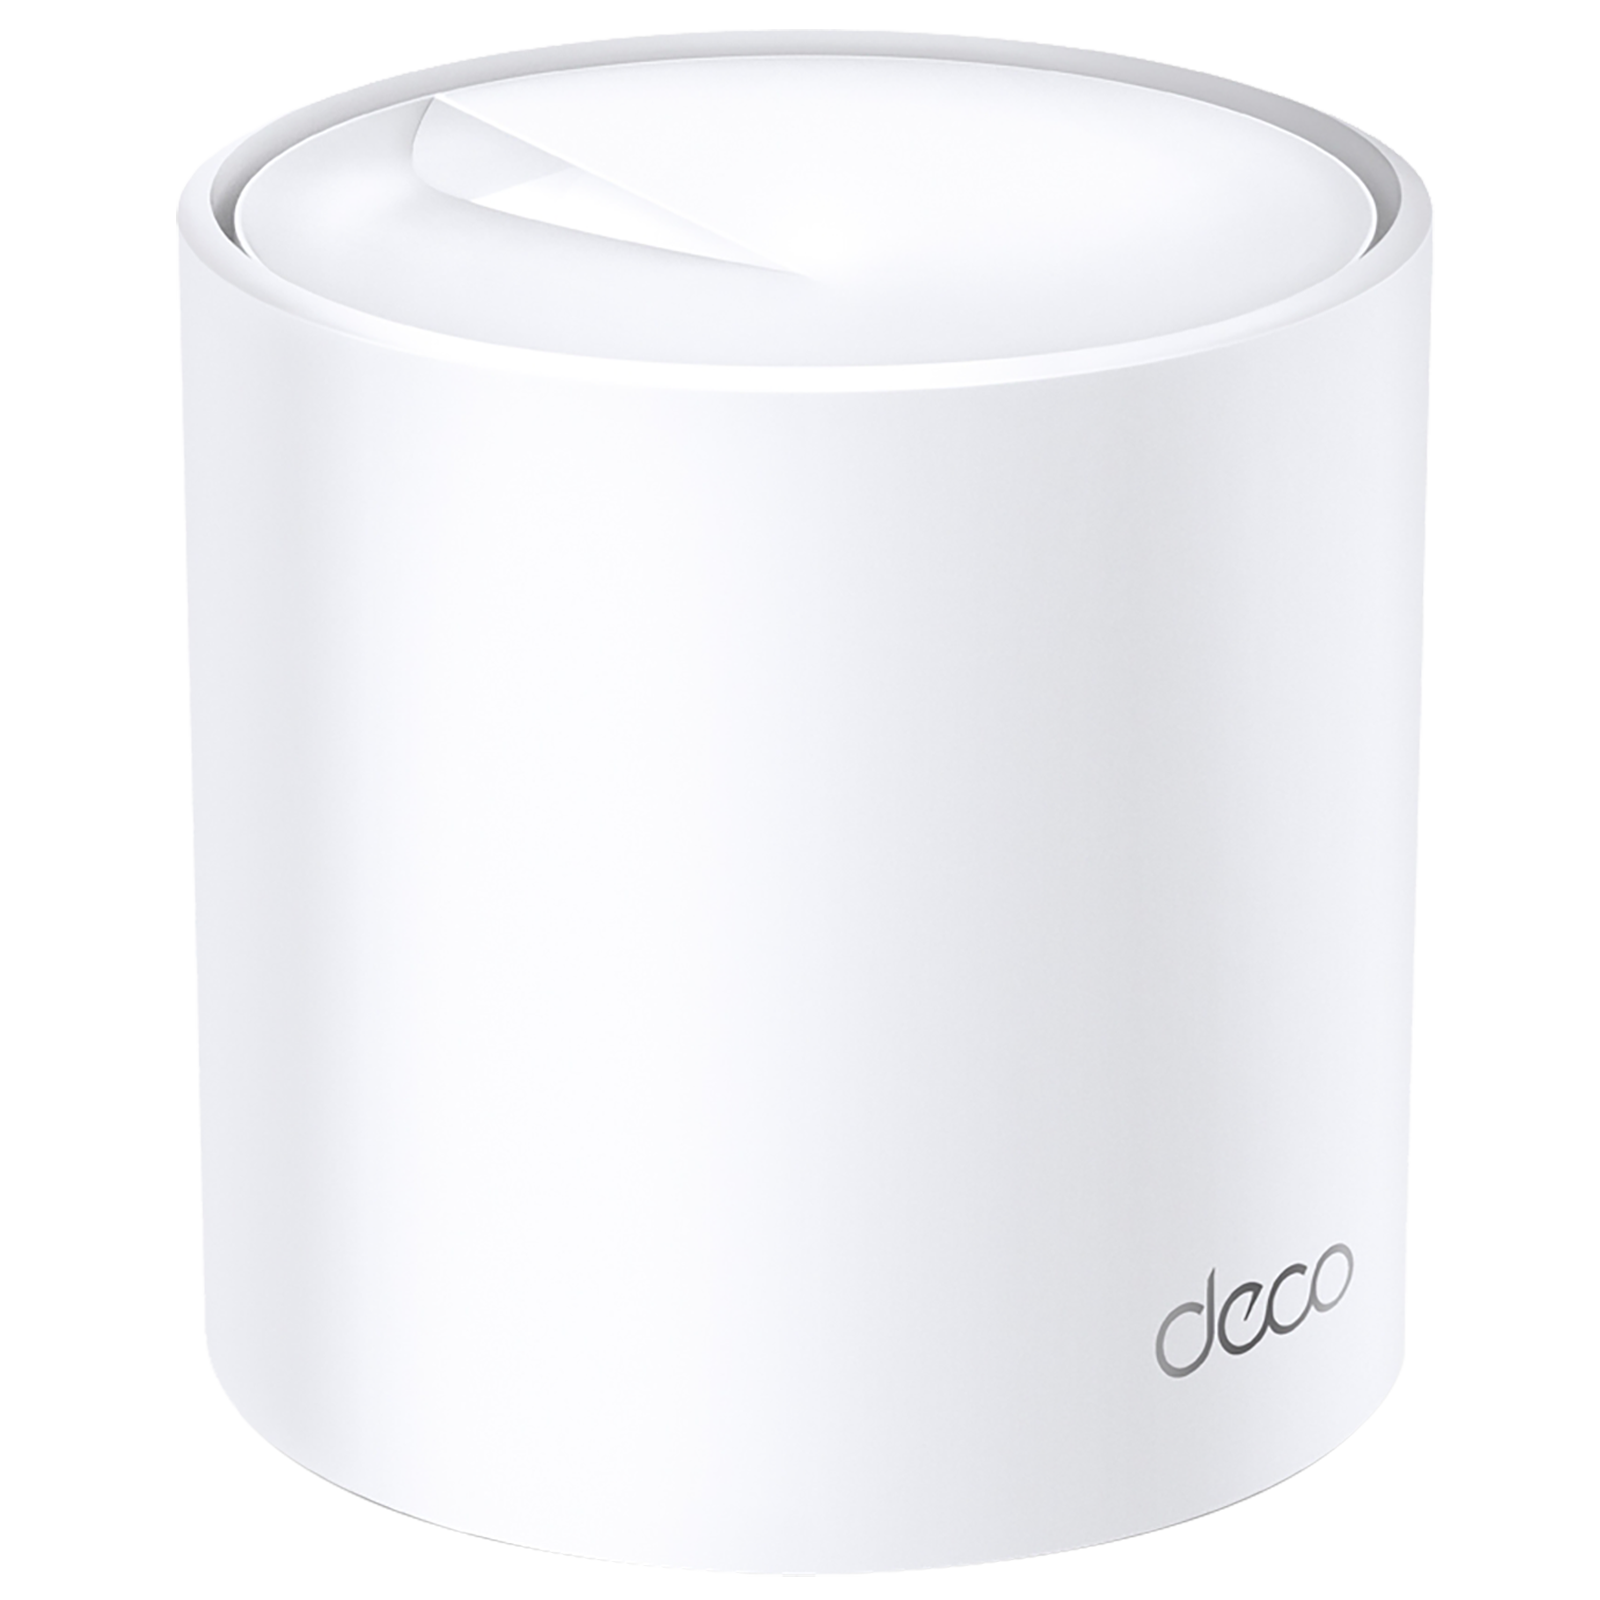 Tp-Link Deco X20 V2 (1-pack) Dual Band Pack of 1 Wi-Fi Home Mesh System (Ultra-Low Latency, 150503289, White)_1